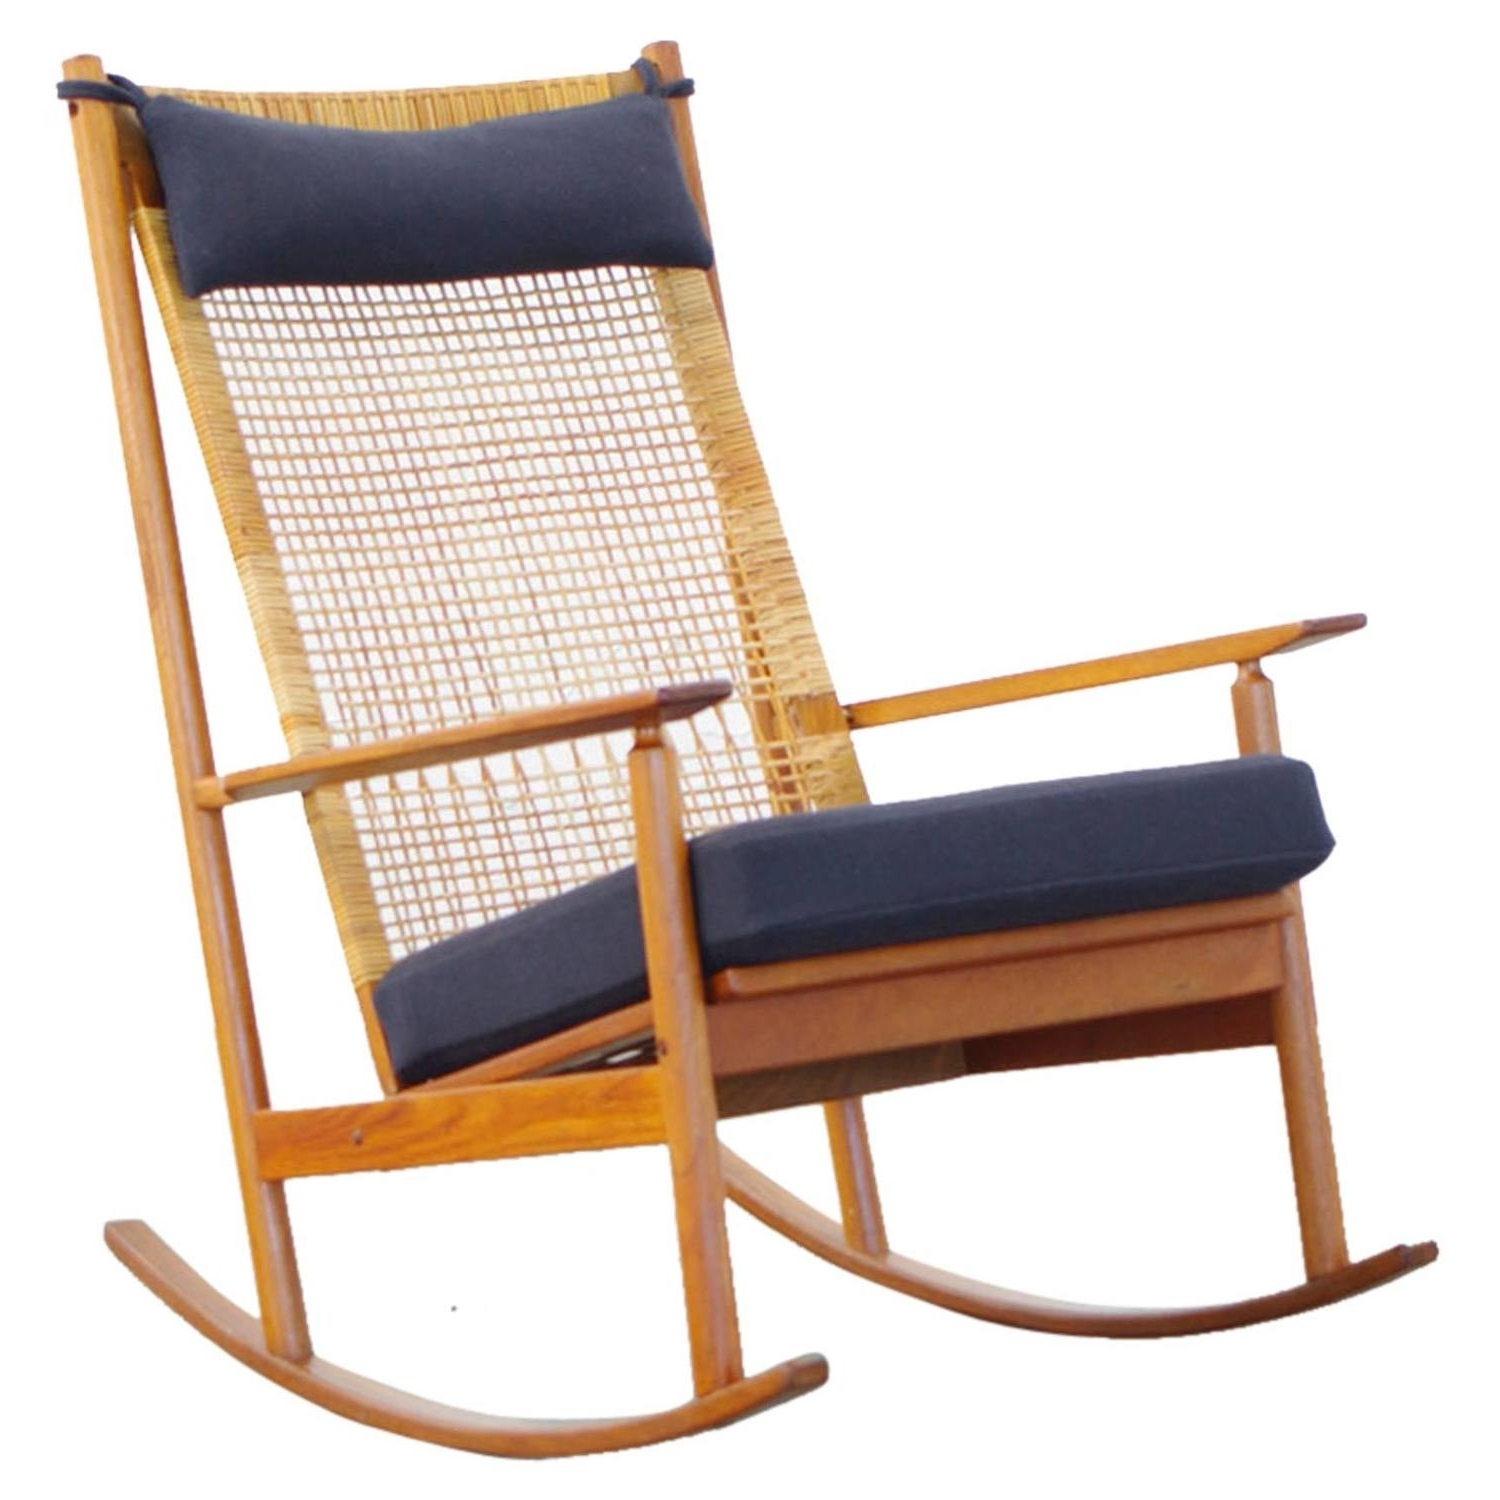 Rocking Chairs At Wayfair Throughout Most Current Ottomans : Rocking Chairs For Nursery Wooden With Cushions Wayfair (View 9 of 15)